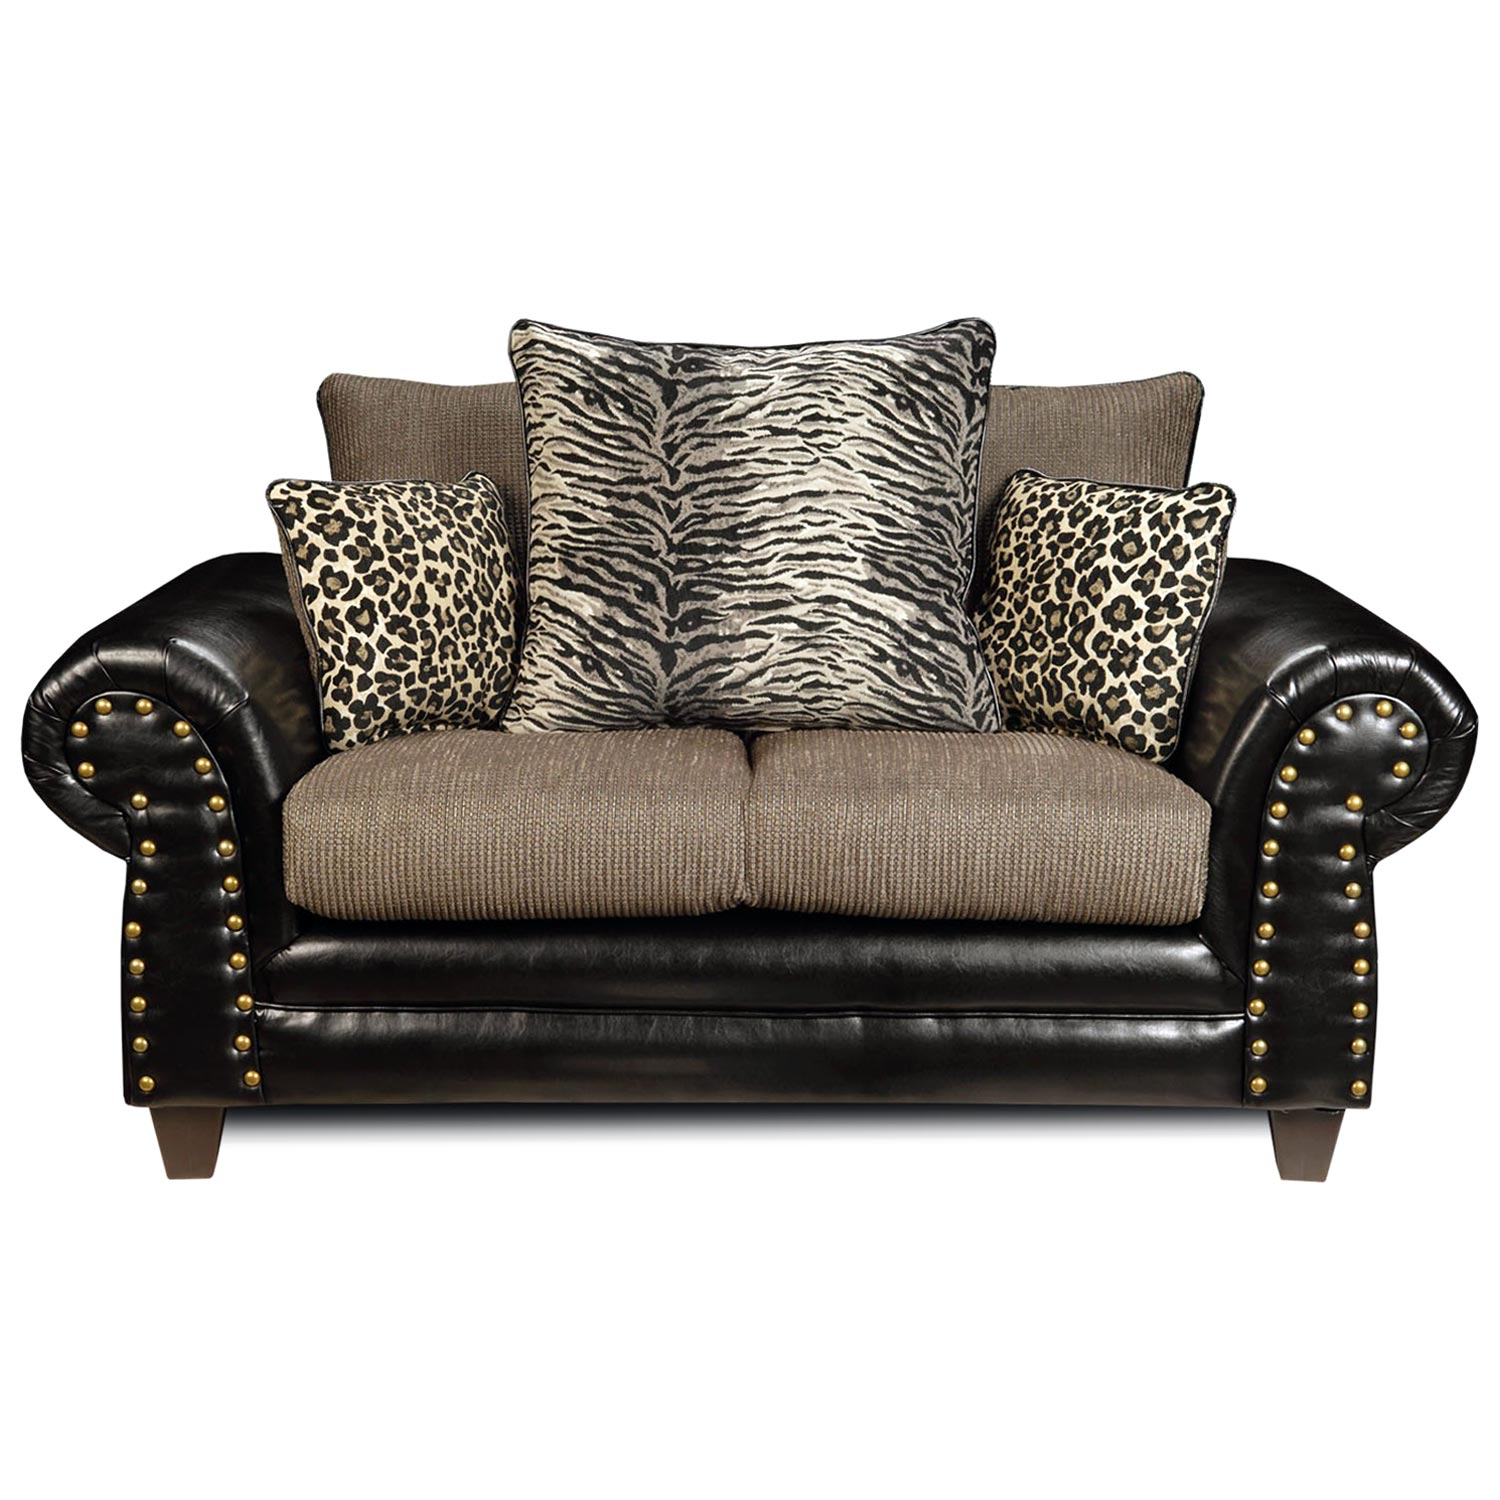 Colbie Transitional Loveseat Leopard Tiger Print Pillows Dcg Stores